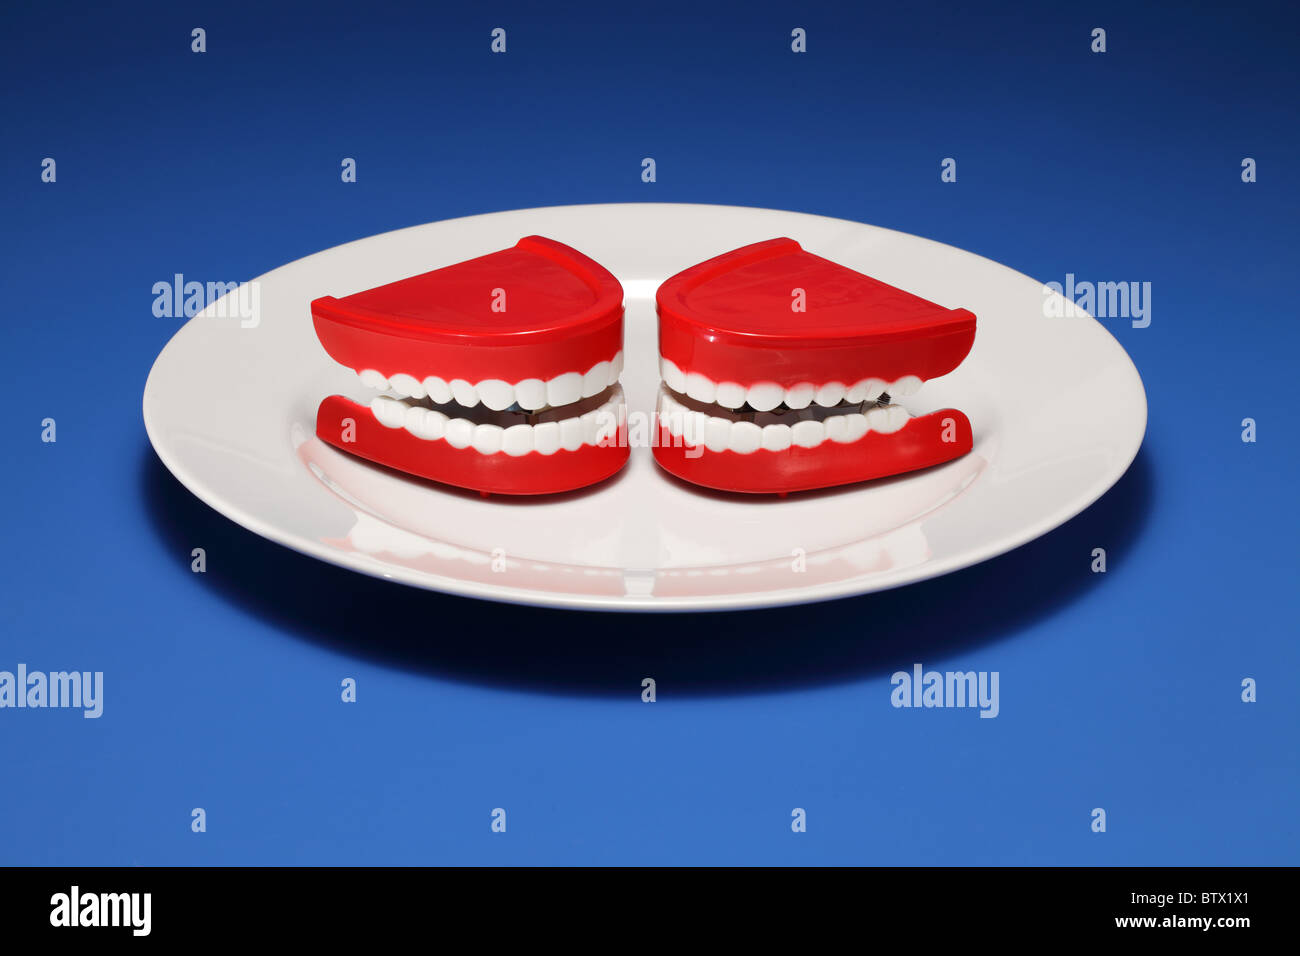 Two plastic gums and teeth on a white dinner plate - Stock Image